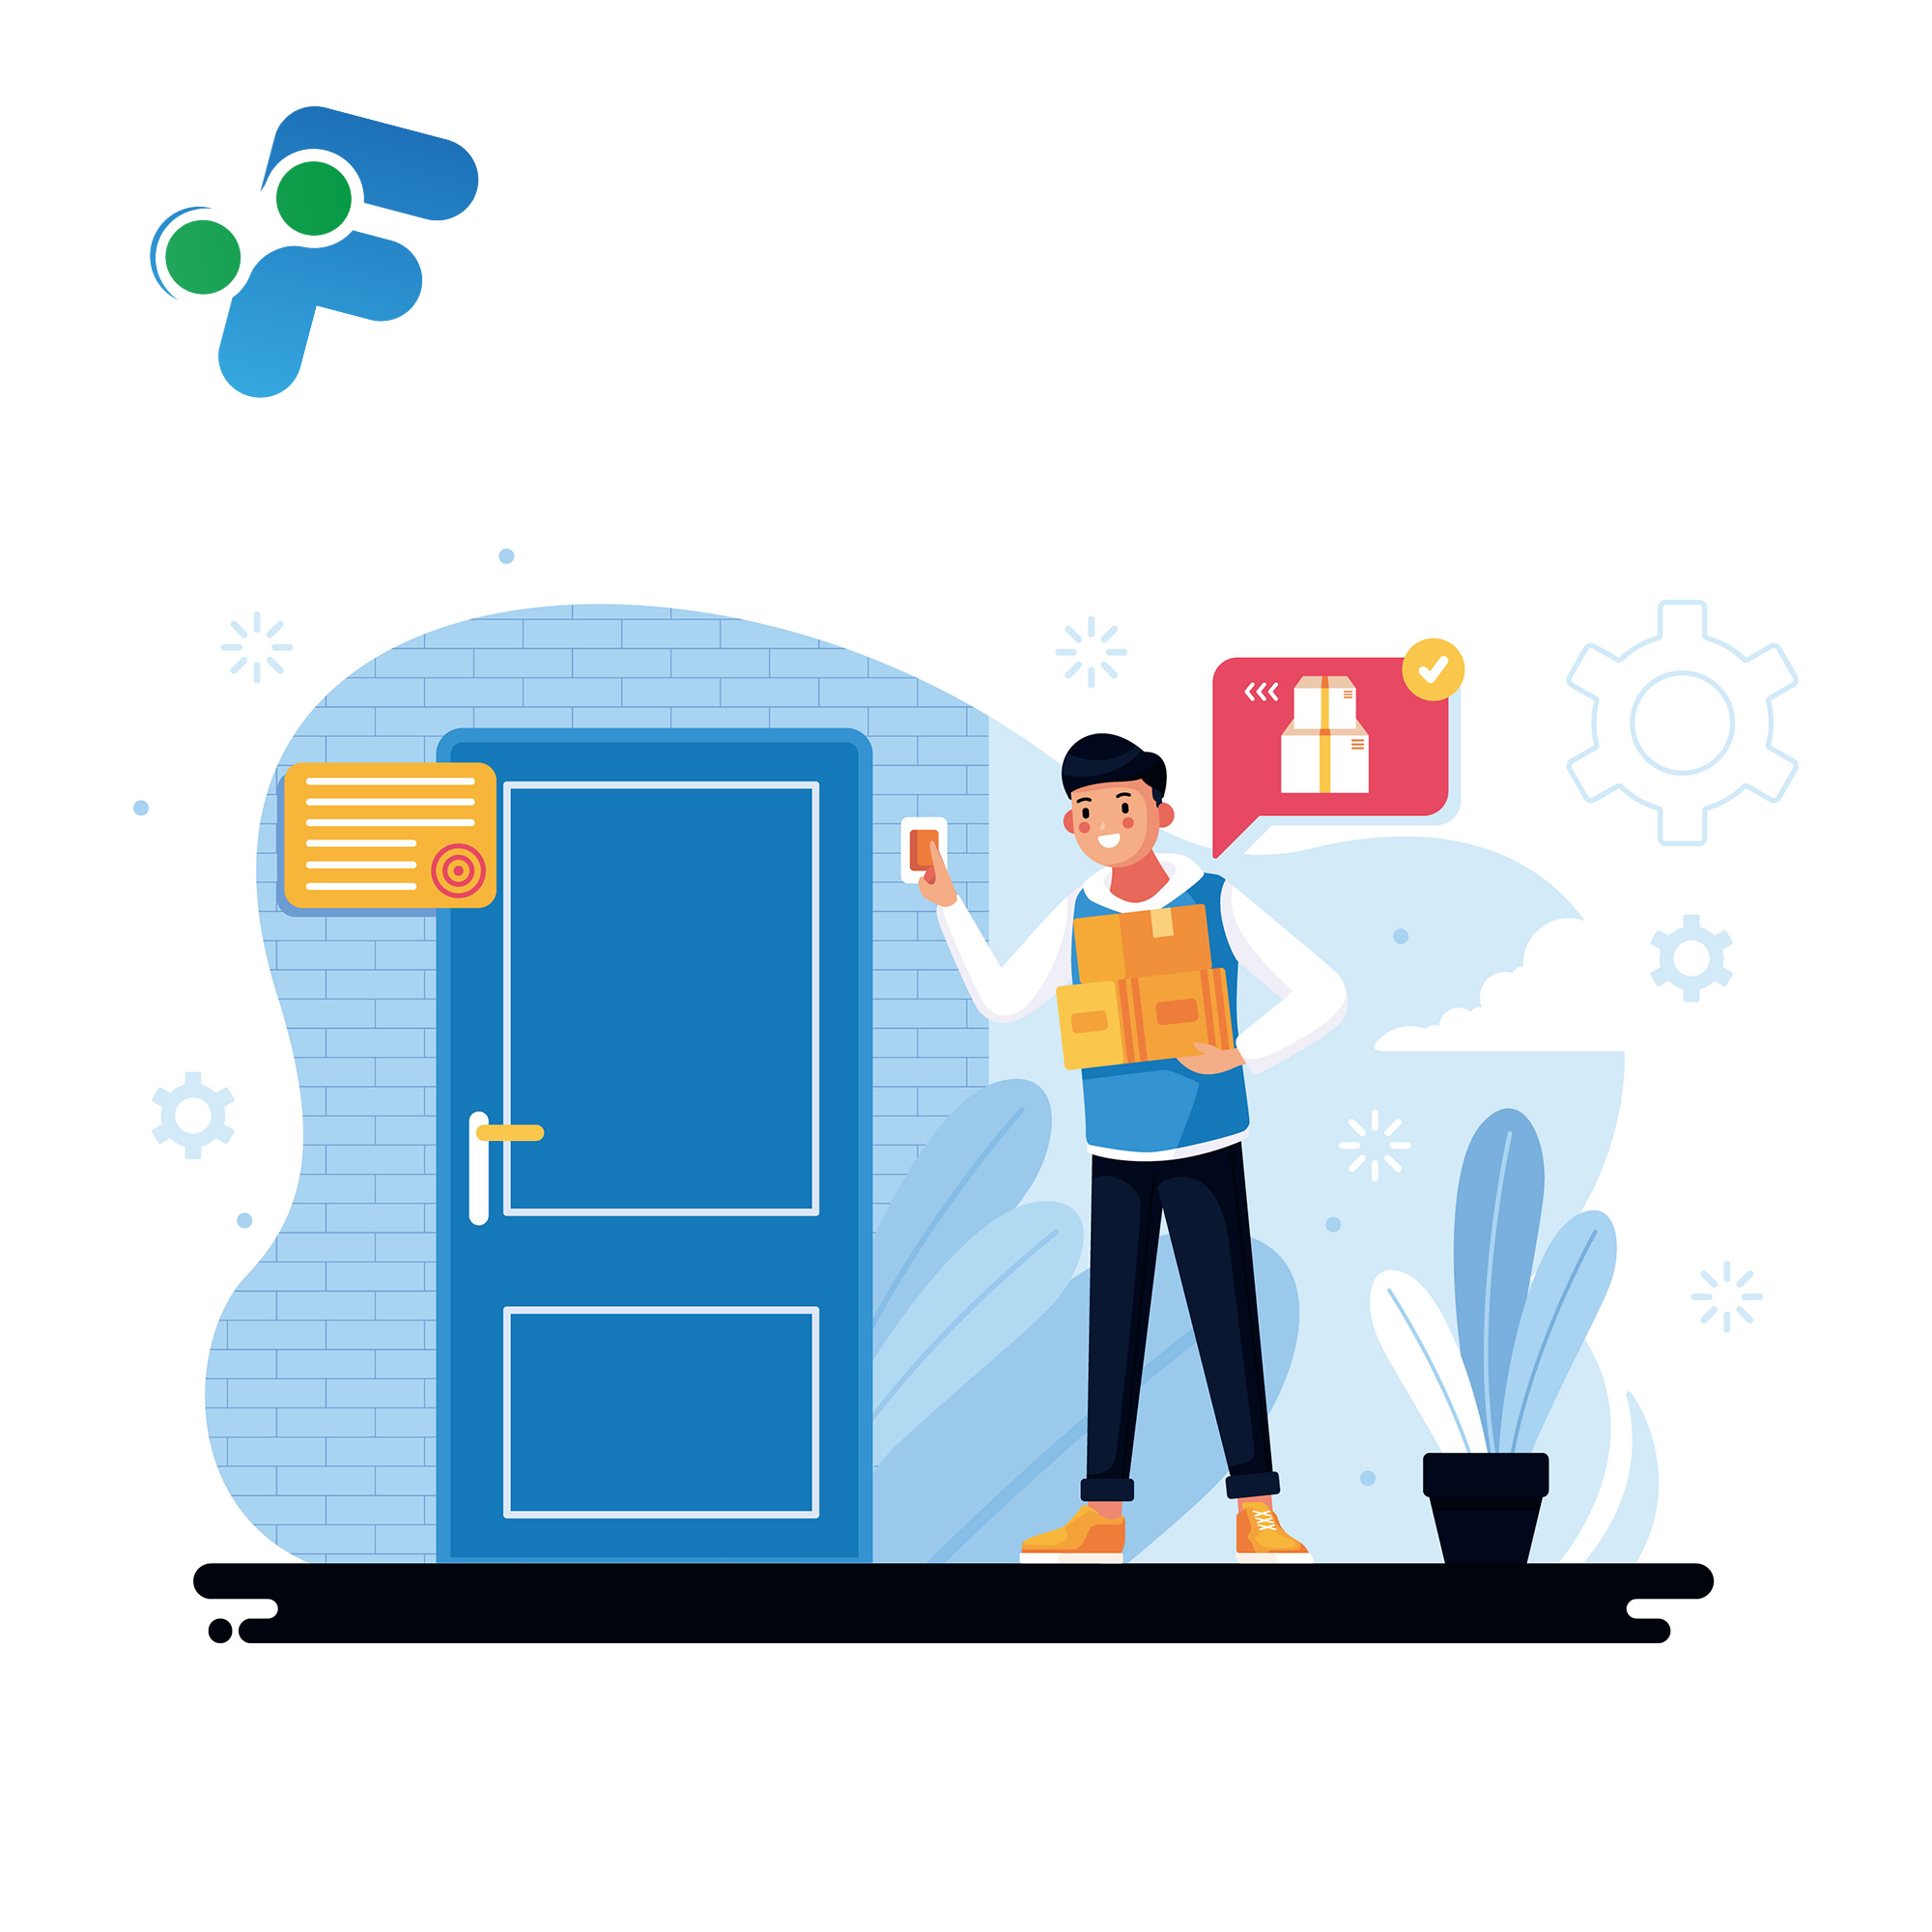 Product Delivery Request based on QuickBooks Online